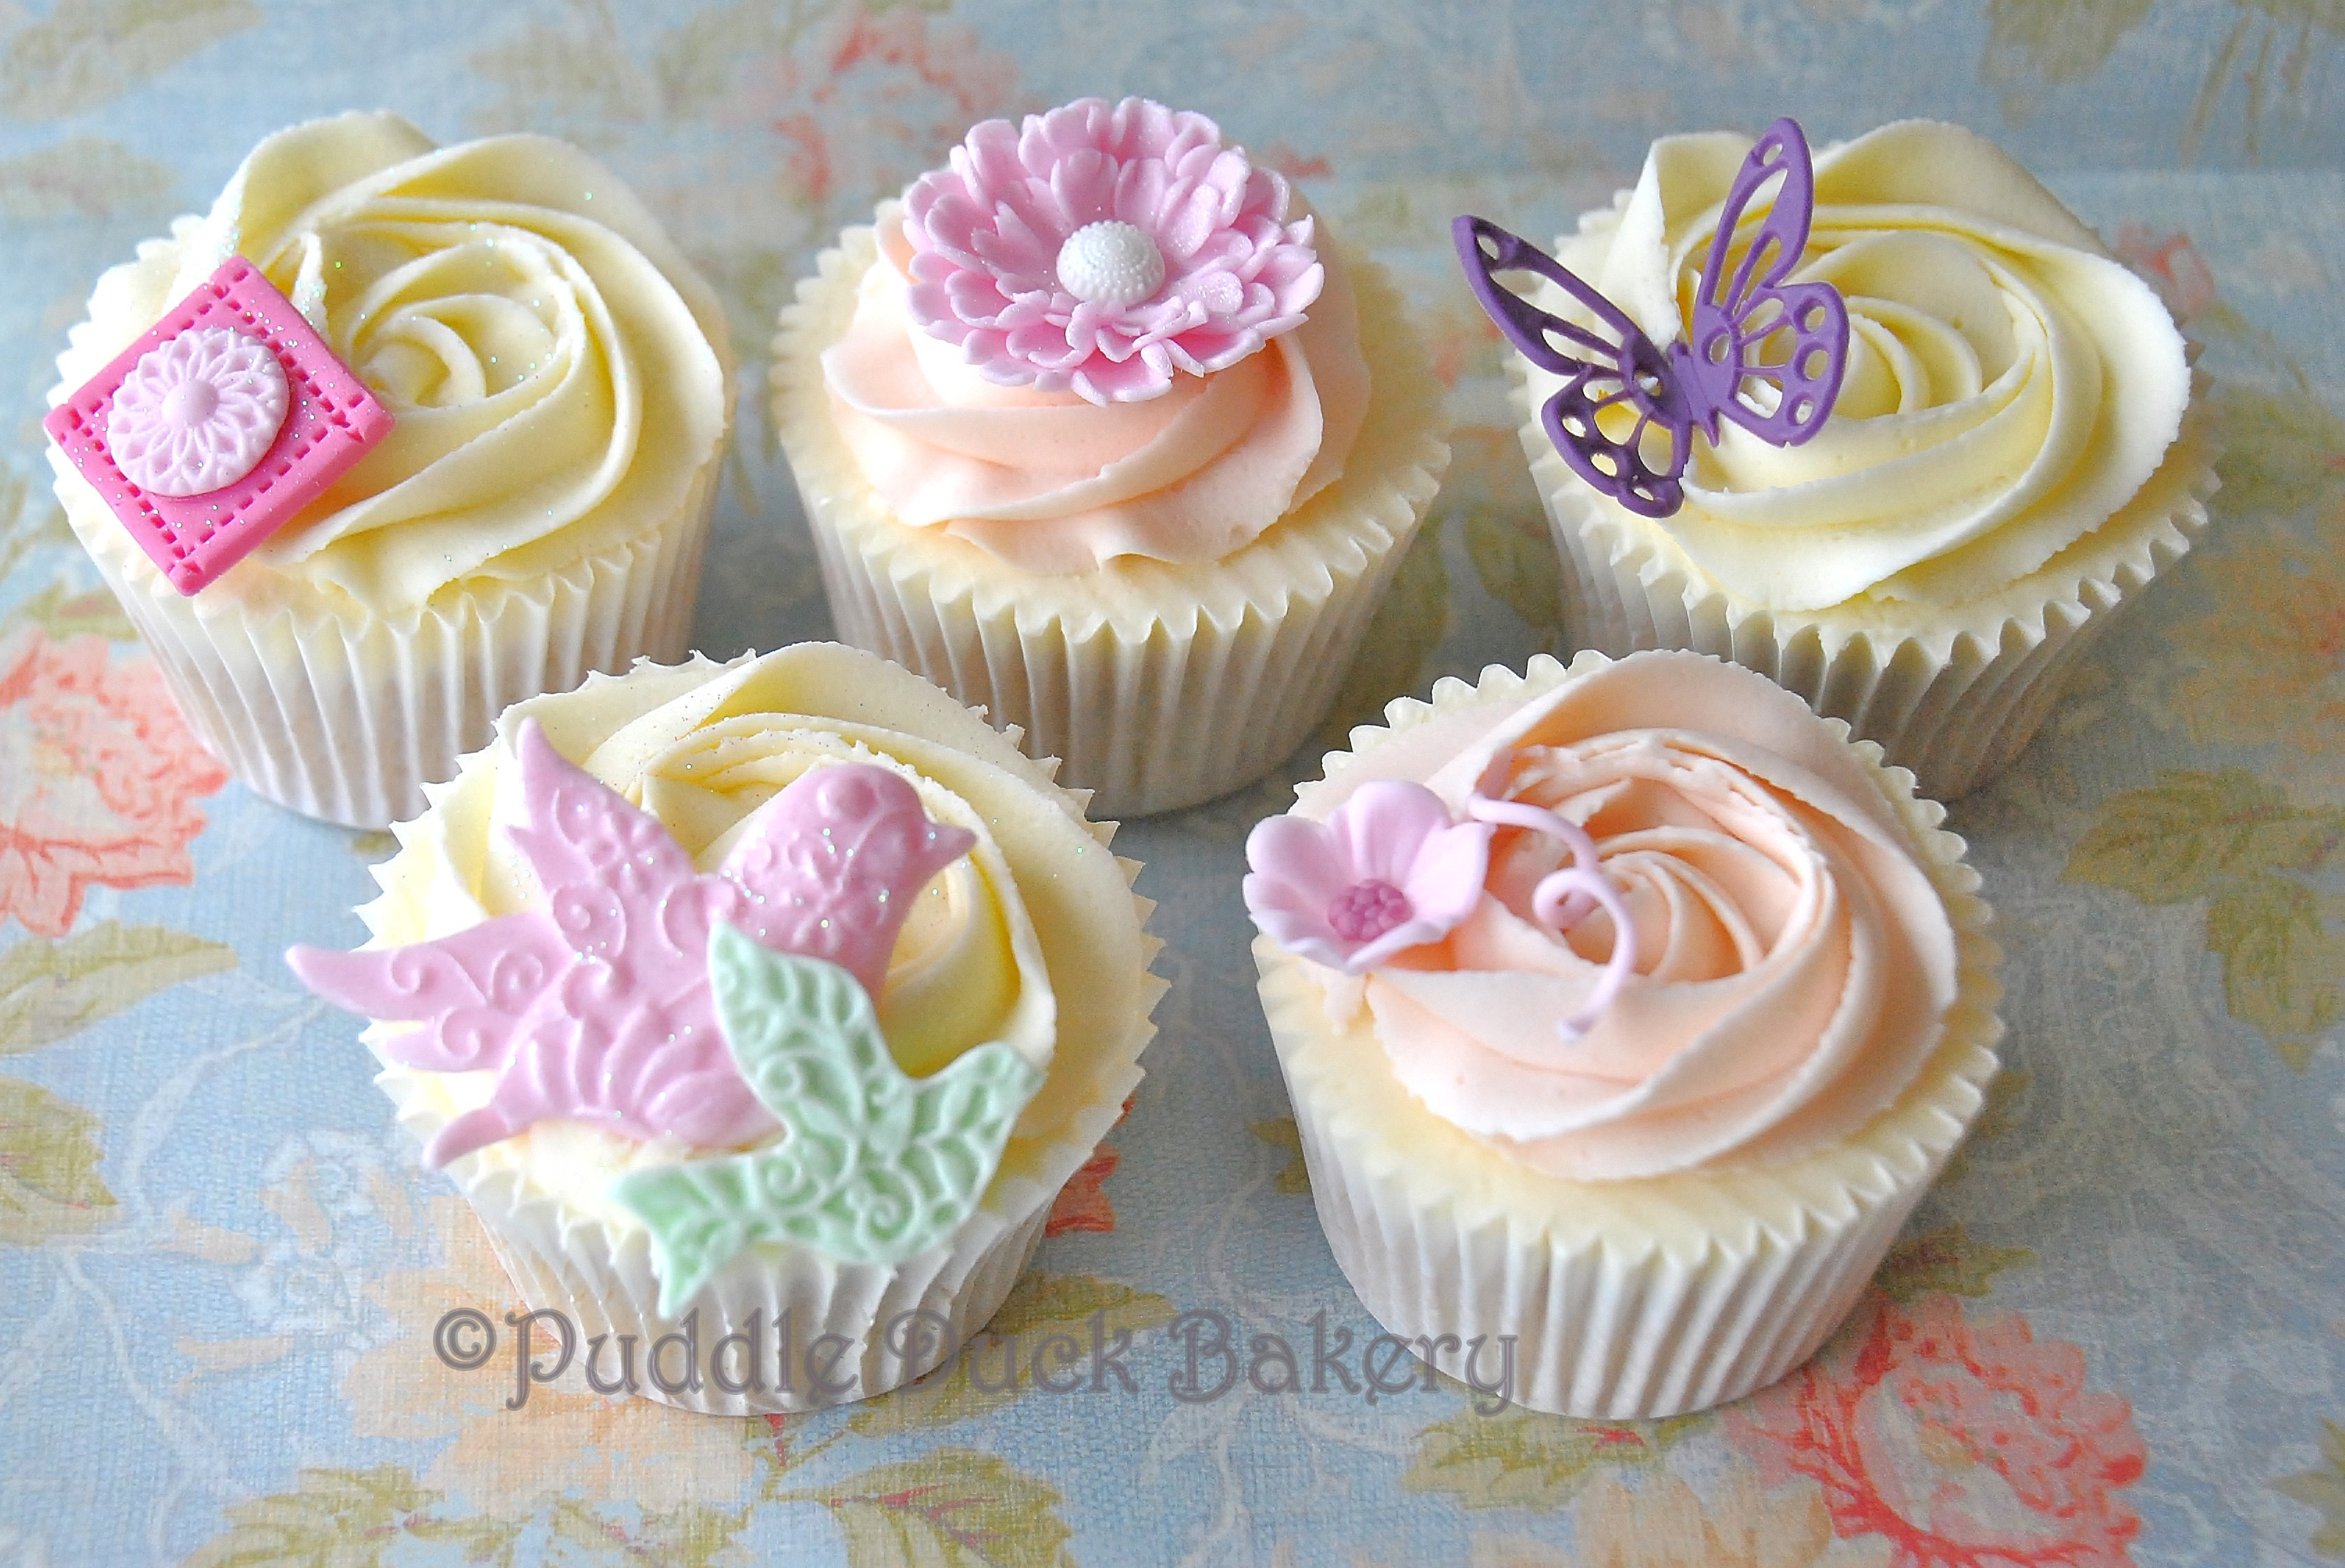 An assortment of elegant cupcakes